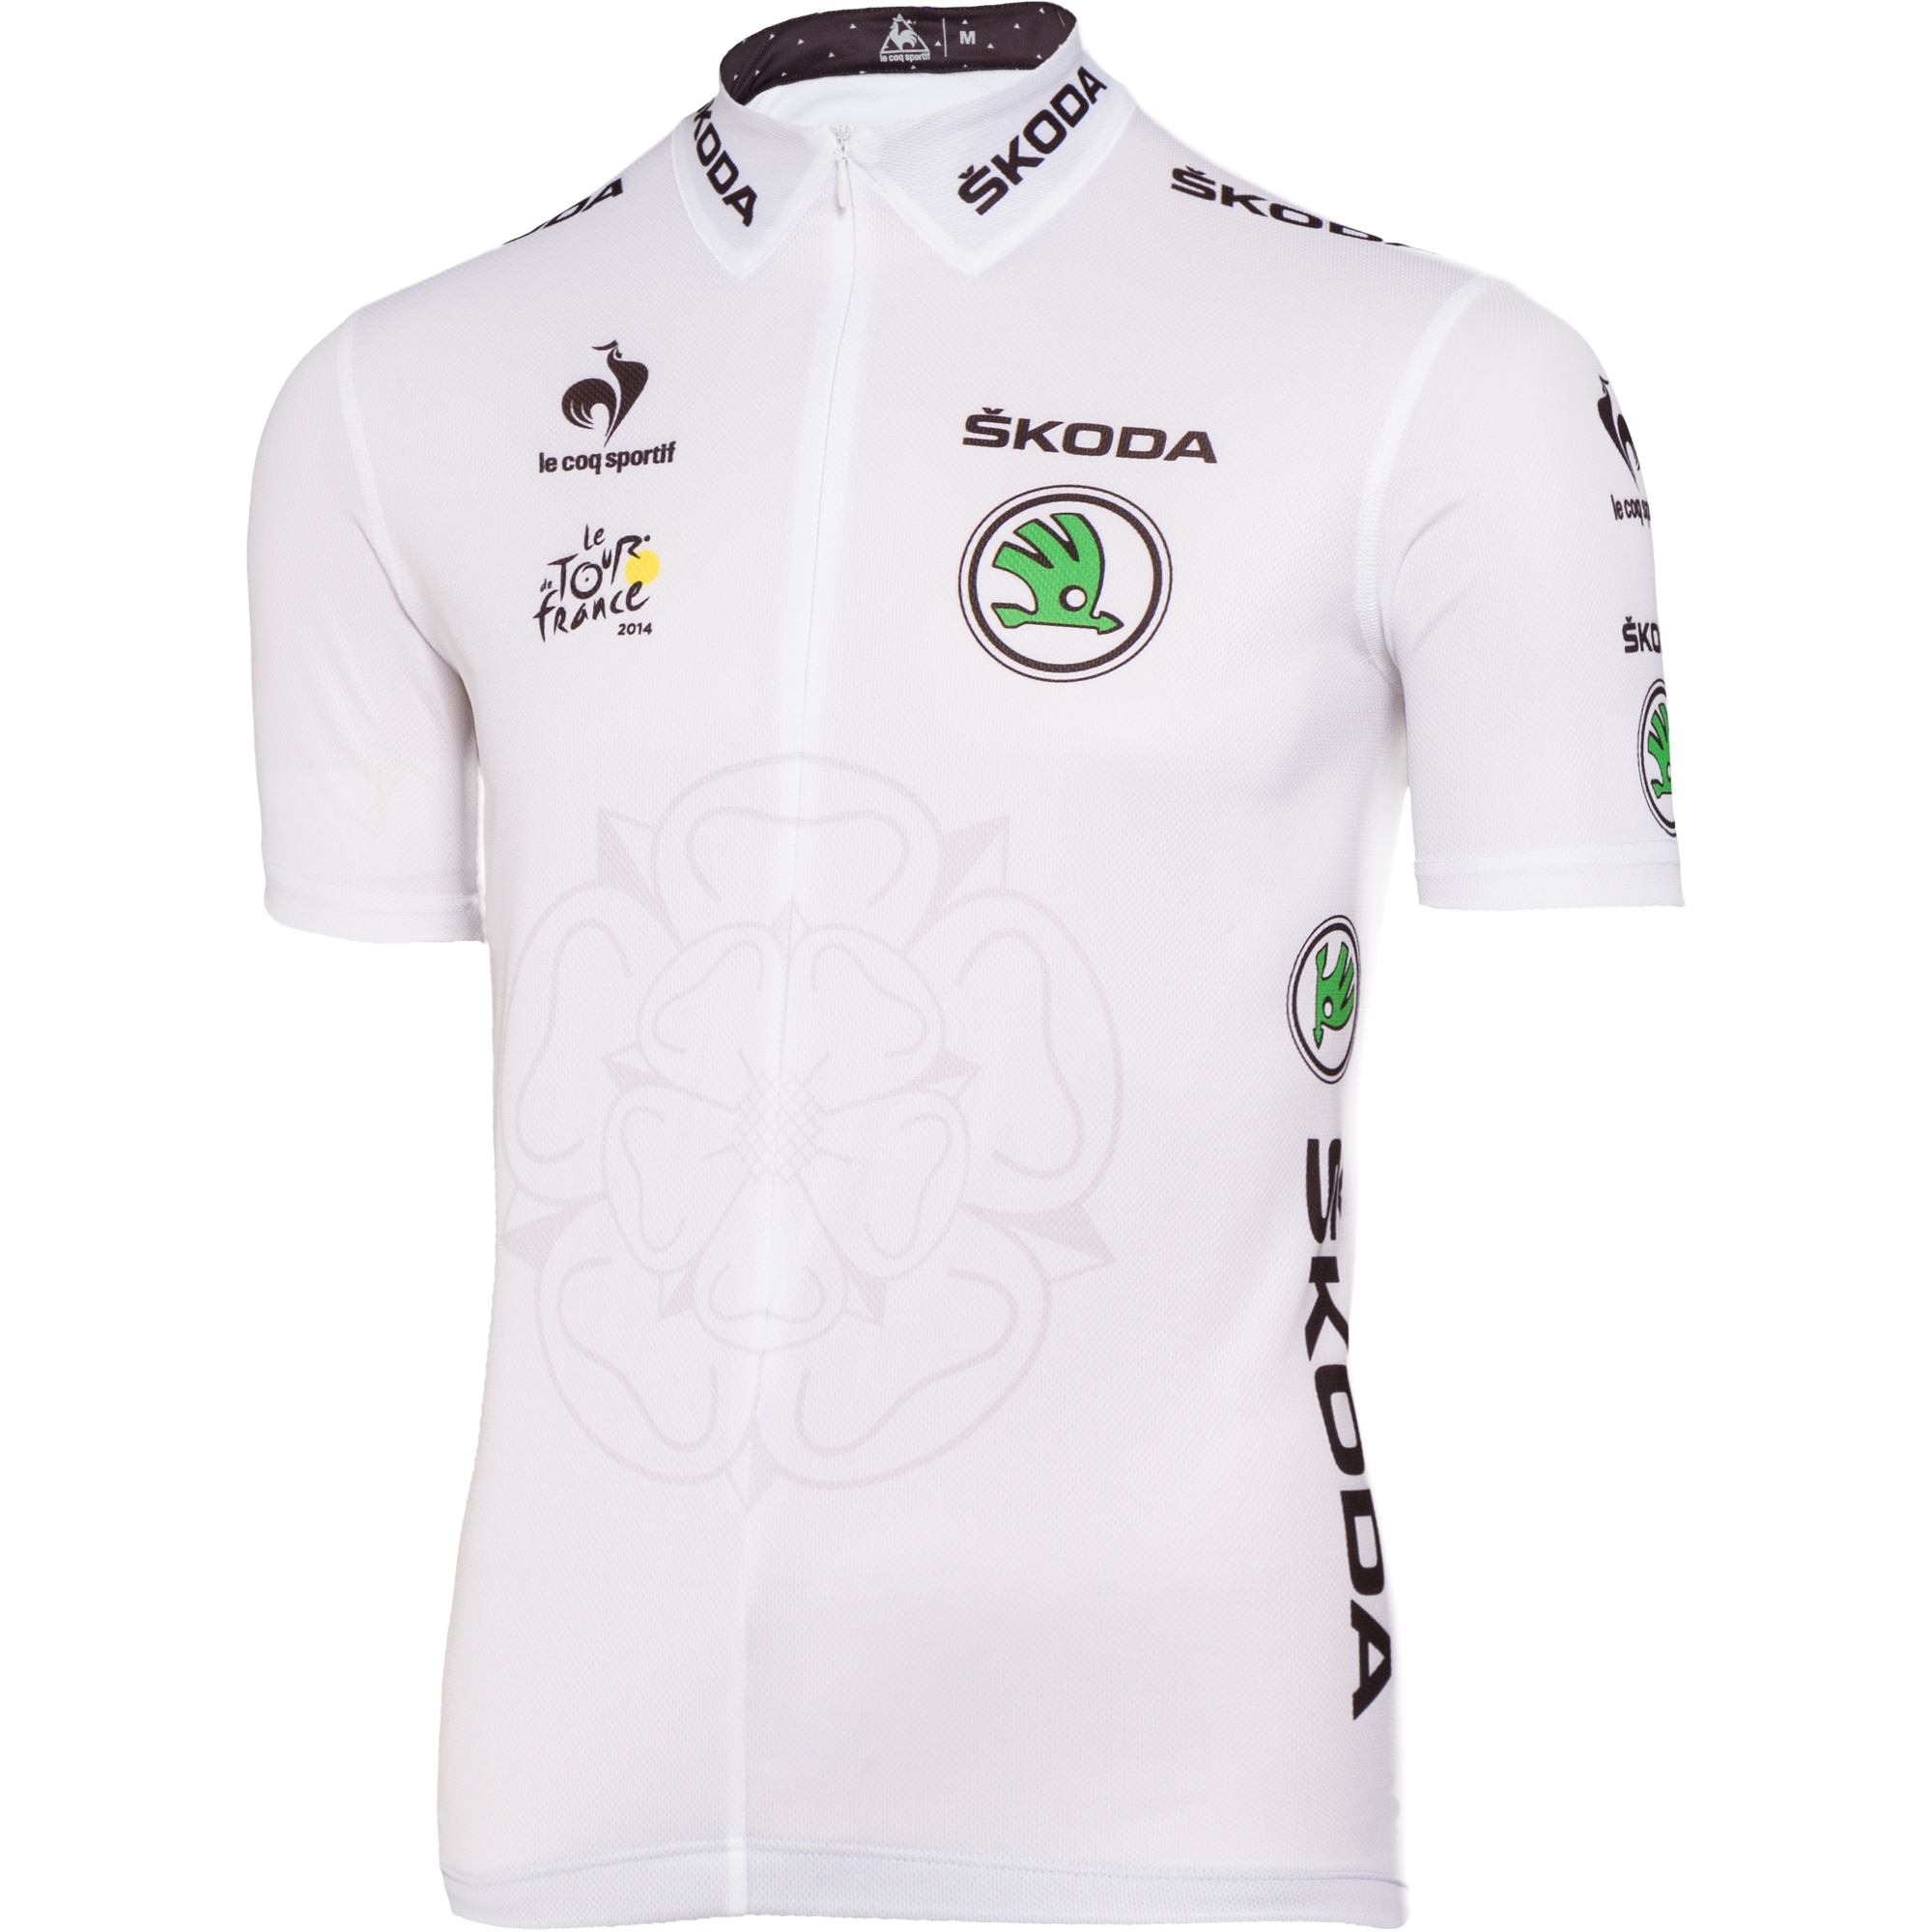 LE COQ SPORTIF 2014 White Replica Jersey Tour de France  4ea9137df